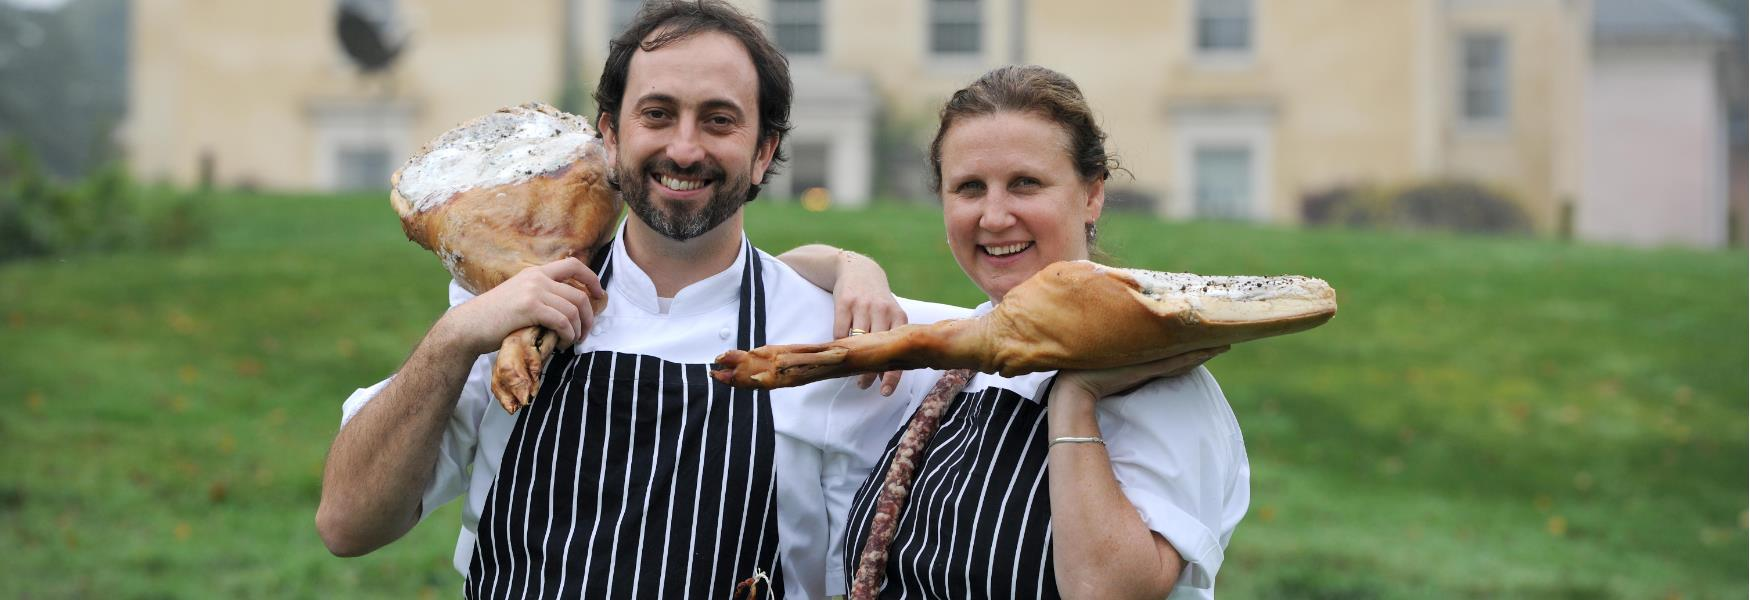 angela Hartnett and luke holder famous chefs at lime wood hotel in the new forest